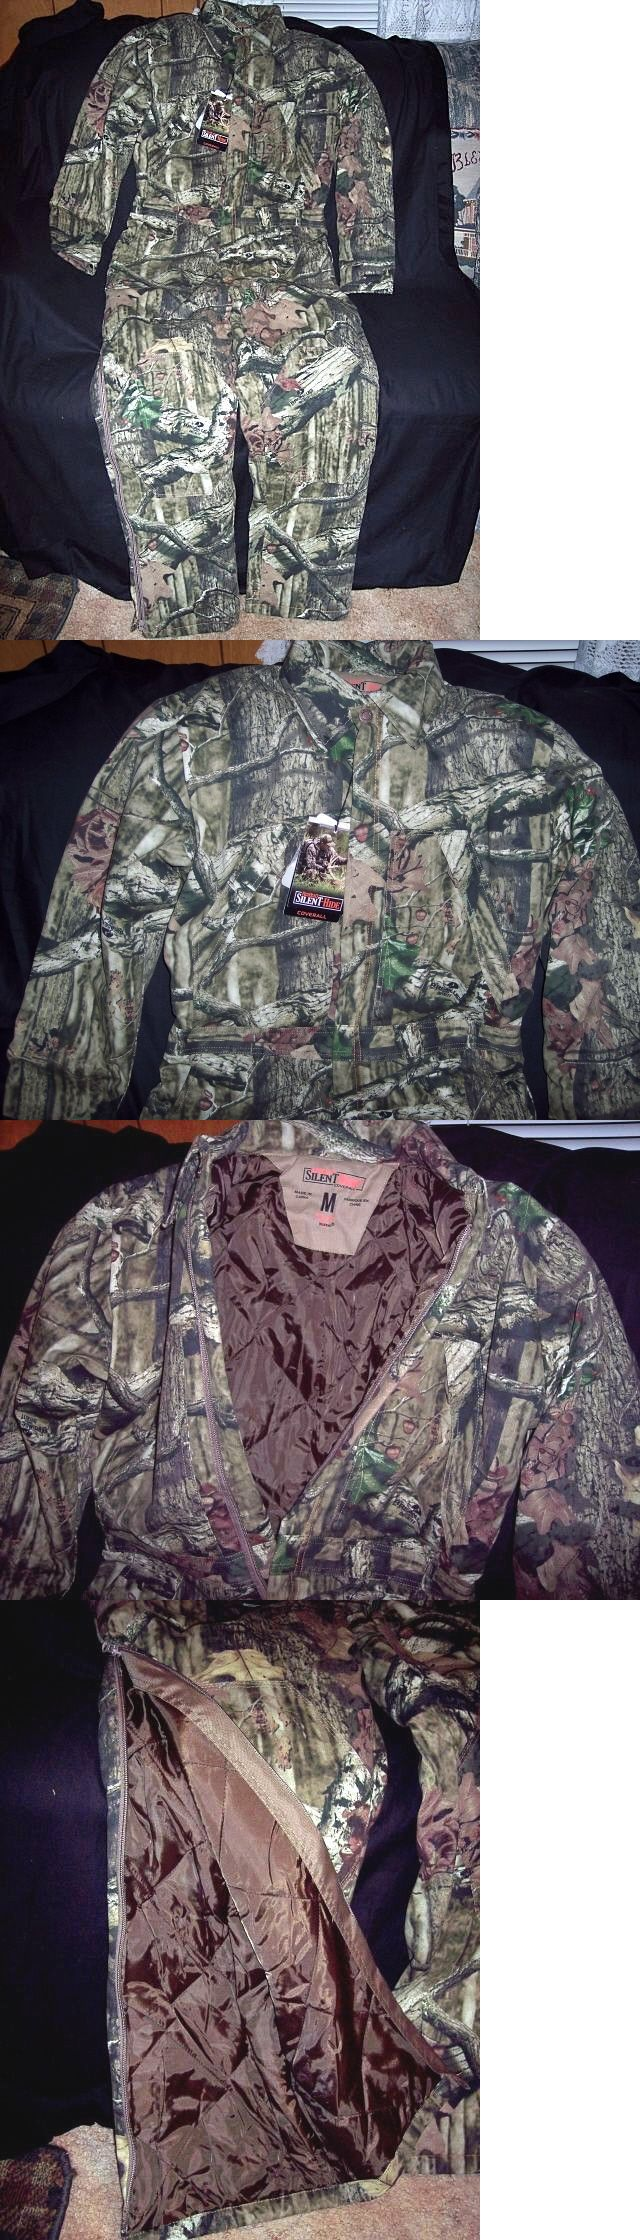 Coveralls 177869: Mossy Oak Camo Coveralls Insulated Coveralls Hunting Coveralls Camouflage Medium -> BUY IT NOW ONLY: $89 on eBay!